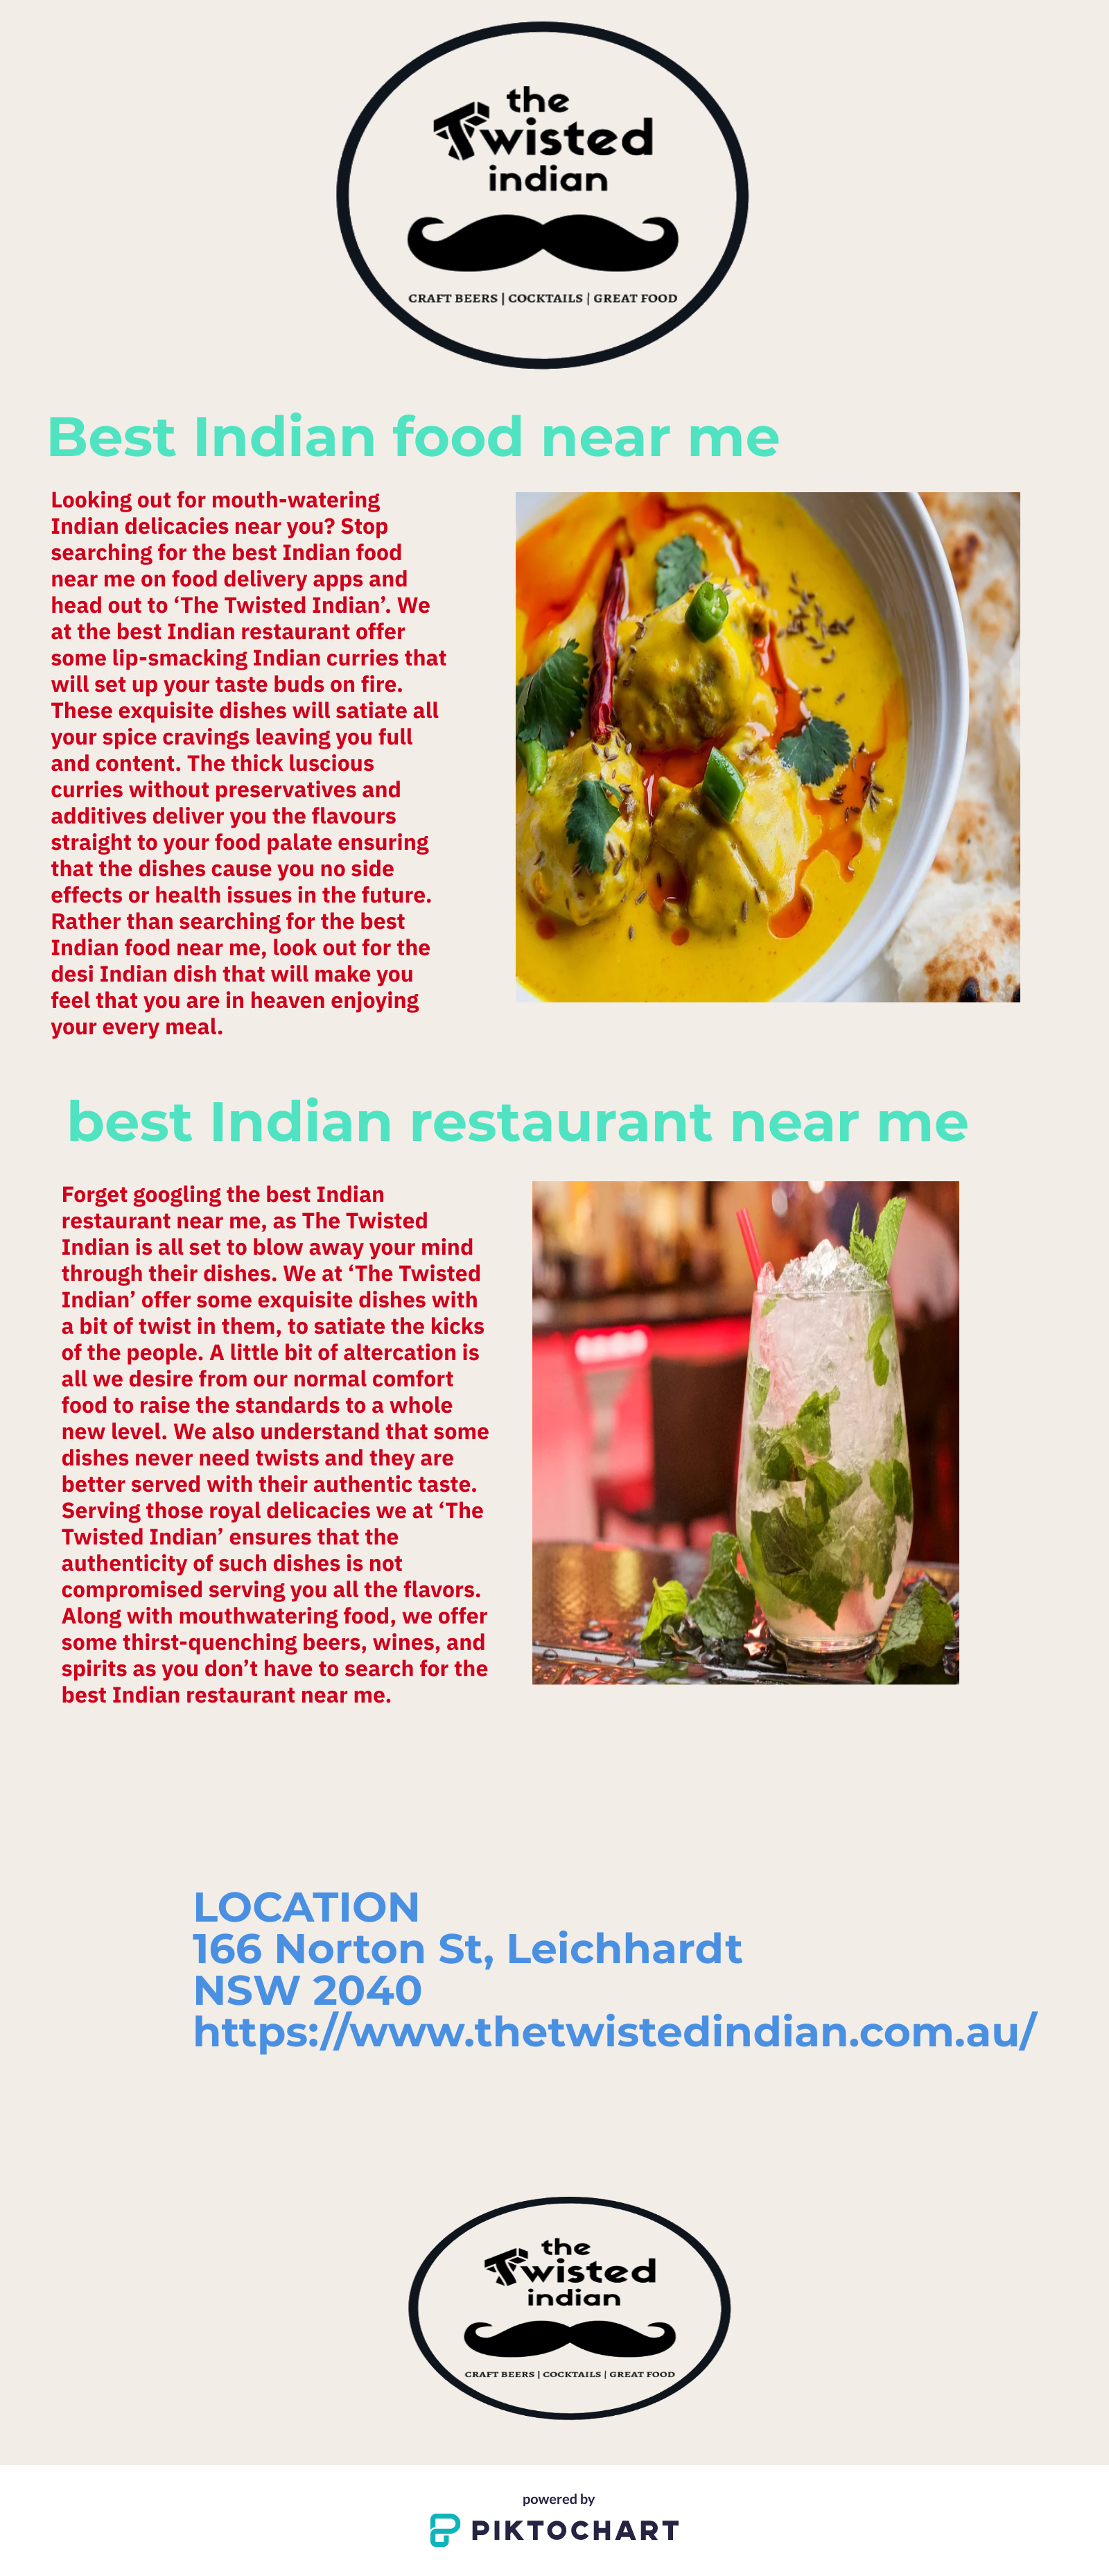 Pin by Thetwisted on best Indian restaurant near me in